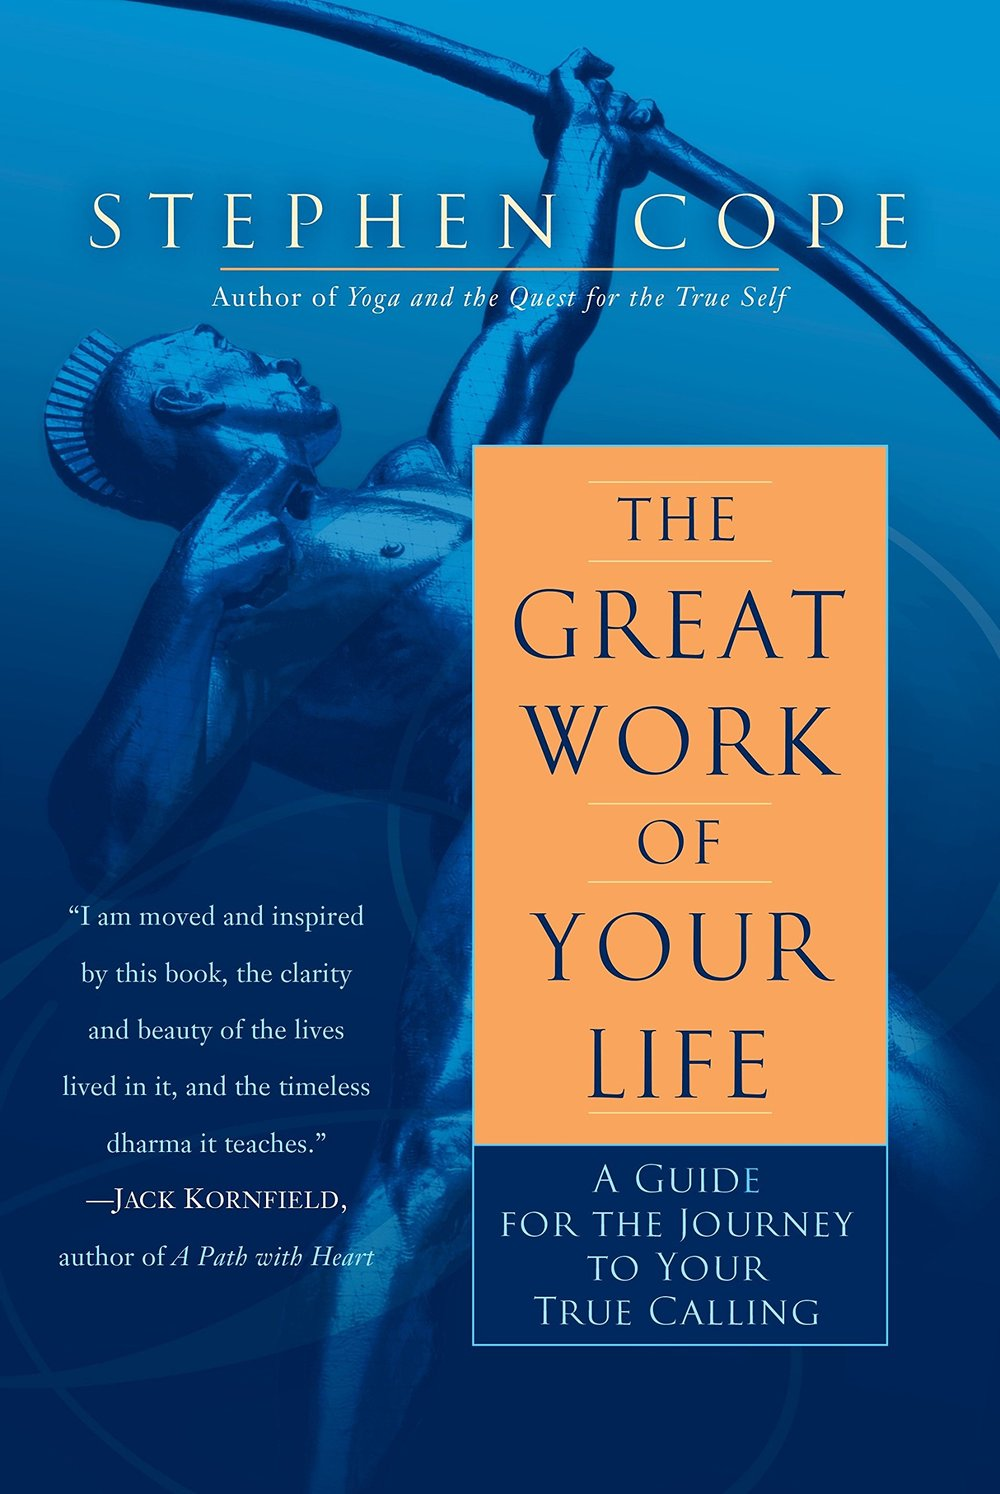 The Great Work of Your Life A Guide for the Journey to Your True Calling.jpg